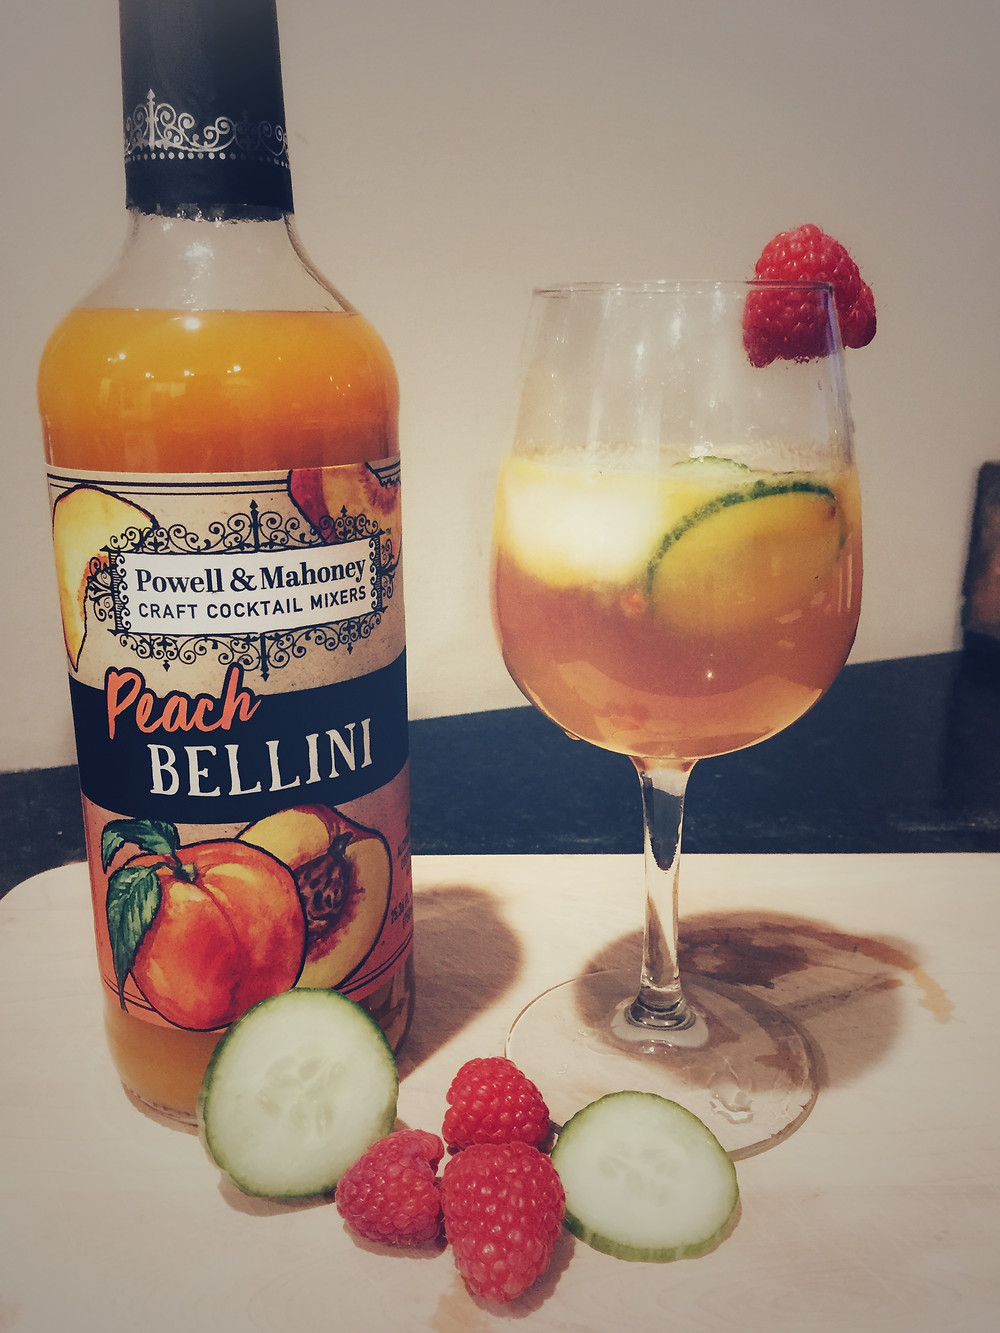 Peach Bellini mixer, raspberries, cucumbers and ginger combine in a delicious mocktail.